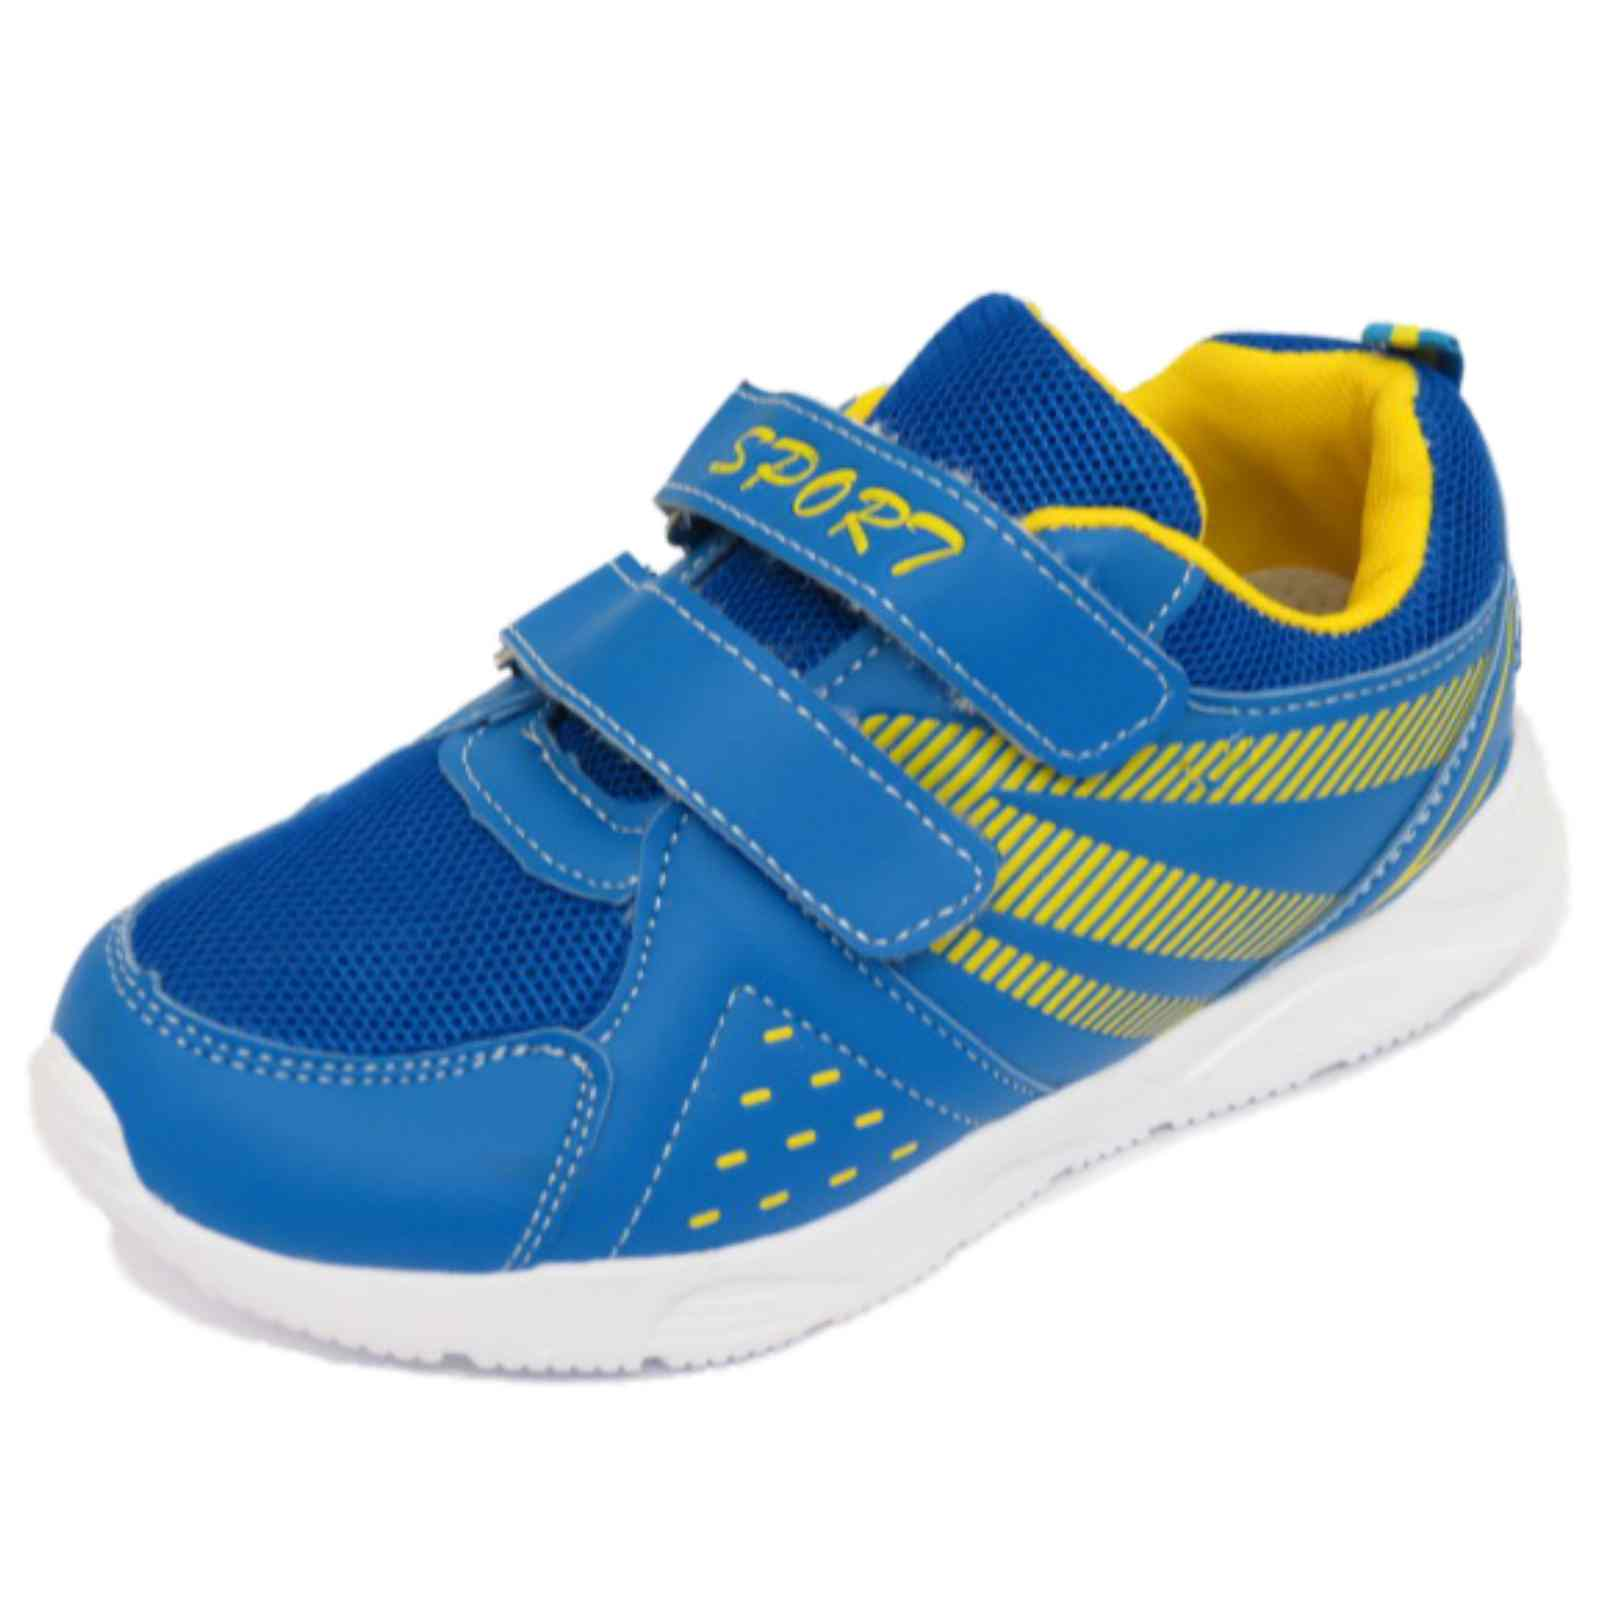 Big Kids (Sizes ) Kids' Shoes at Macy's come in all shapes and sizes. Browse Big Kids (Sizes ) Kids' Shoes at Macy's and find shoes for girls, shoes for boys, toddler shoes and more.